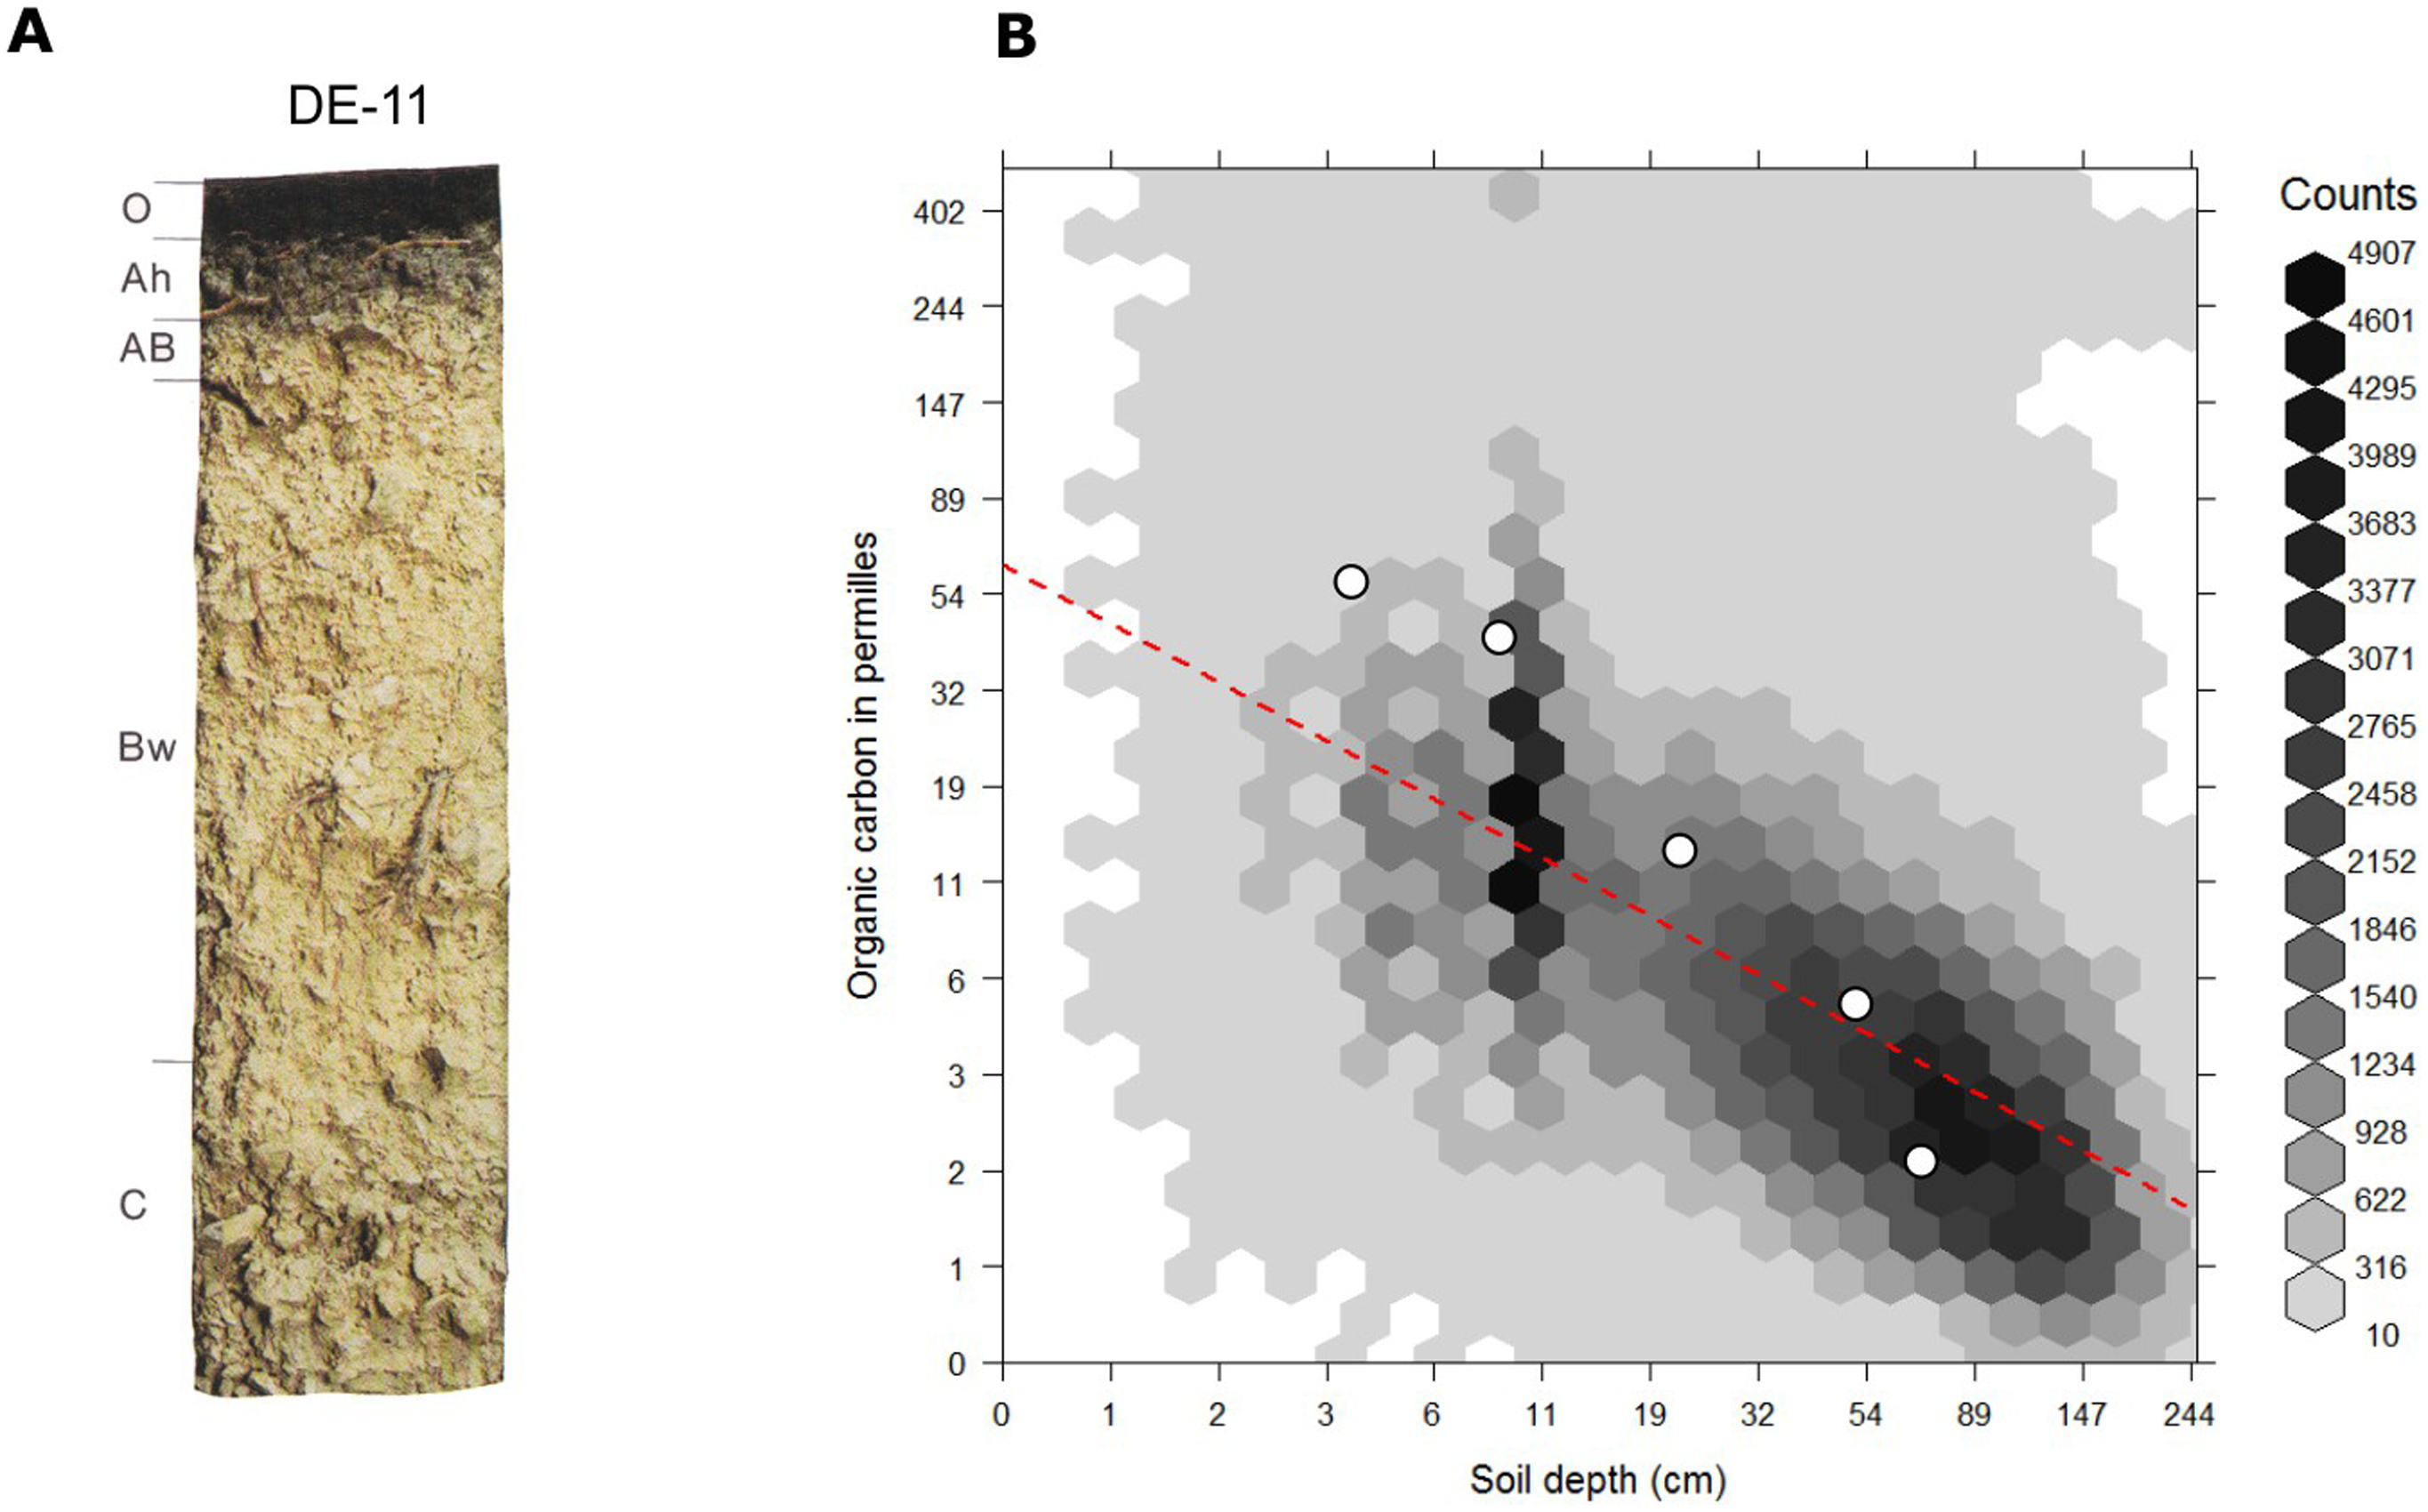 Globally fitted regression model for predicting soil organic carbon using depth only (log-log regression) and (a) individual soil profile from the ISRIC soil monolith collection. Image source: Hengl et al. (2014) doi: 10.1371/journal.pone.0105992.